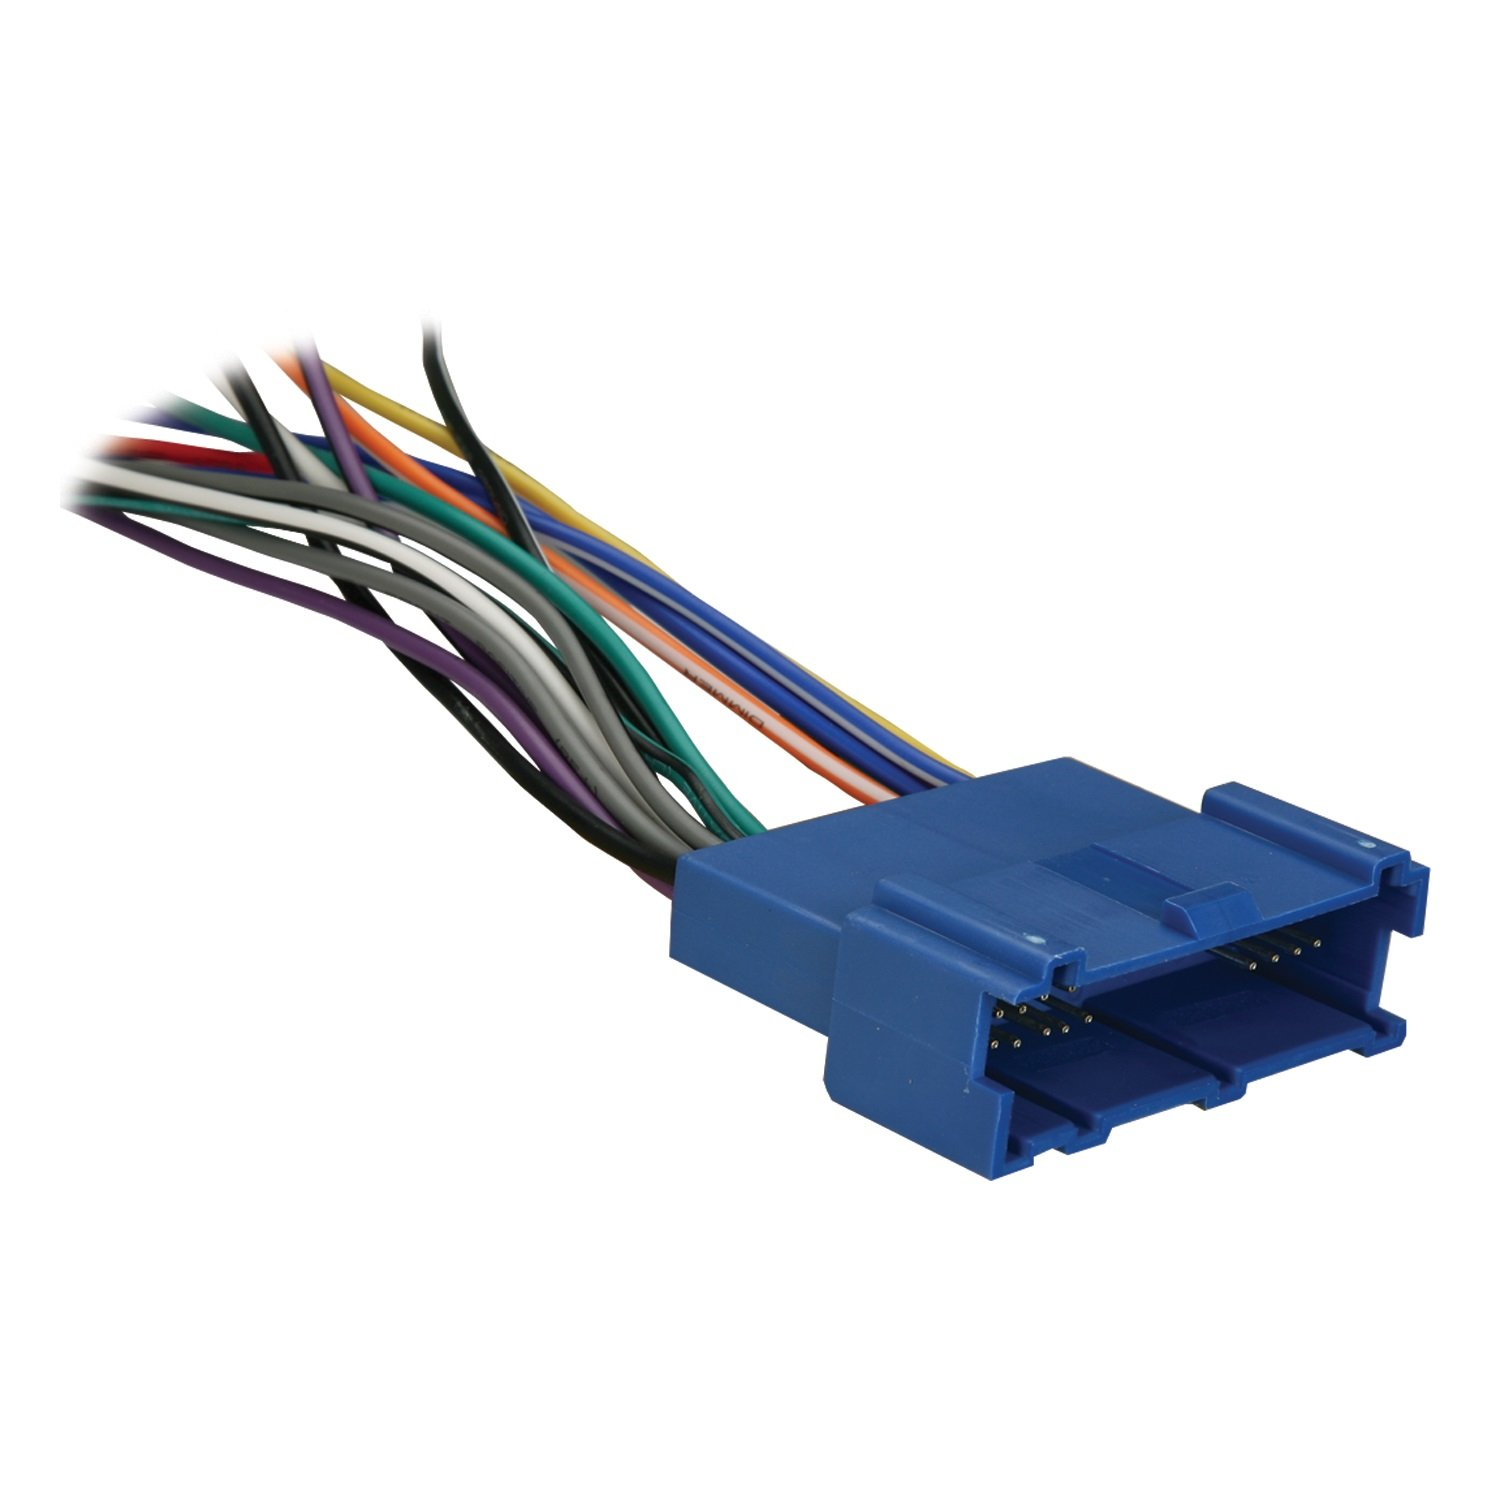 Amazon.com: Metra 70-2001 Radio Wiring Harness for GM 94-04: Car ...